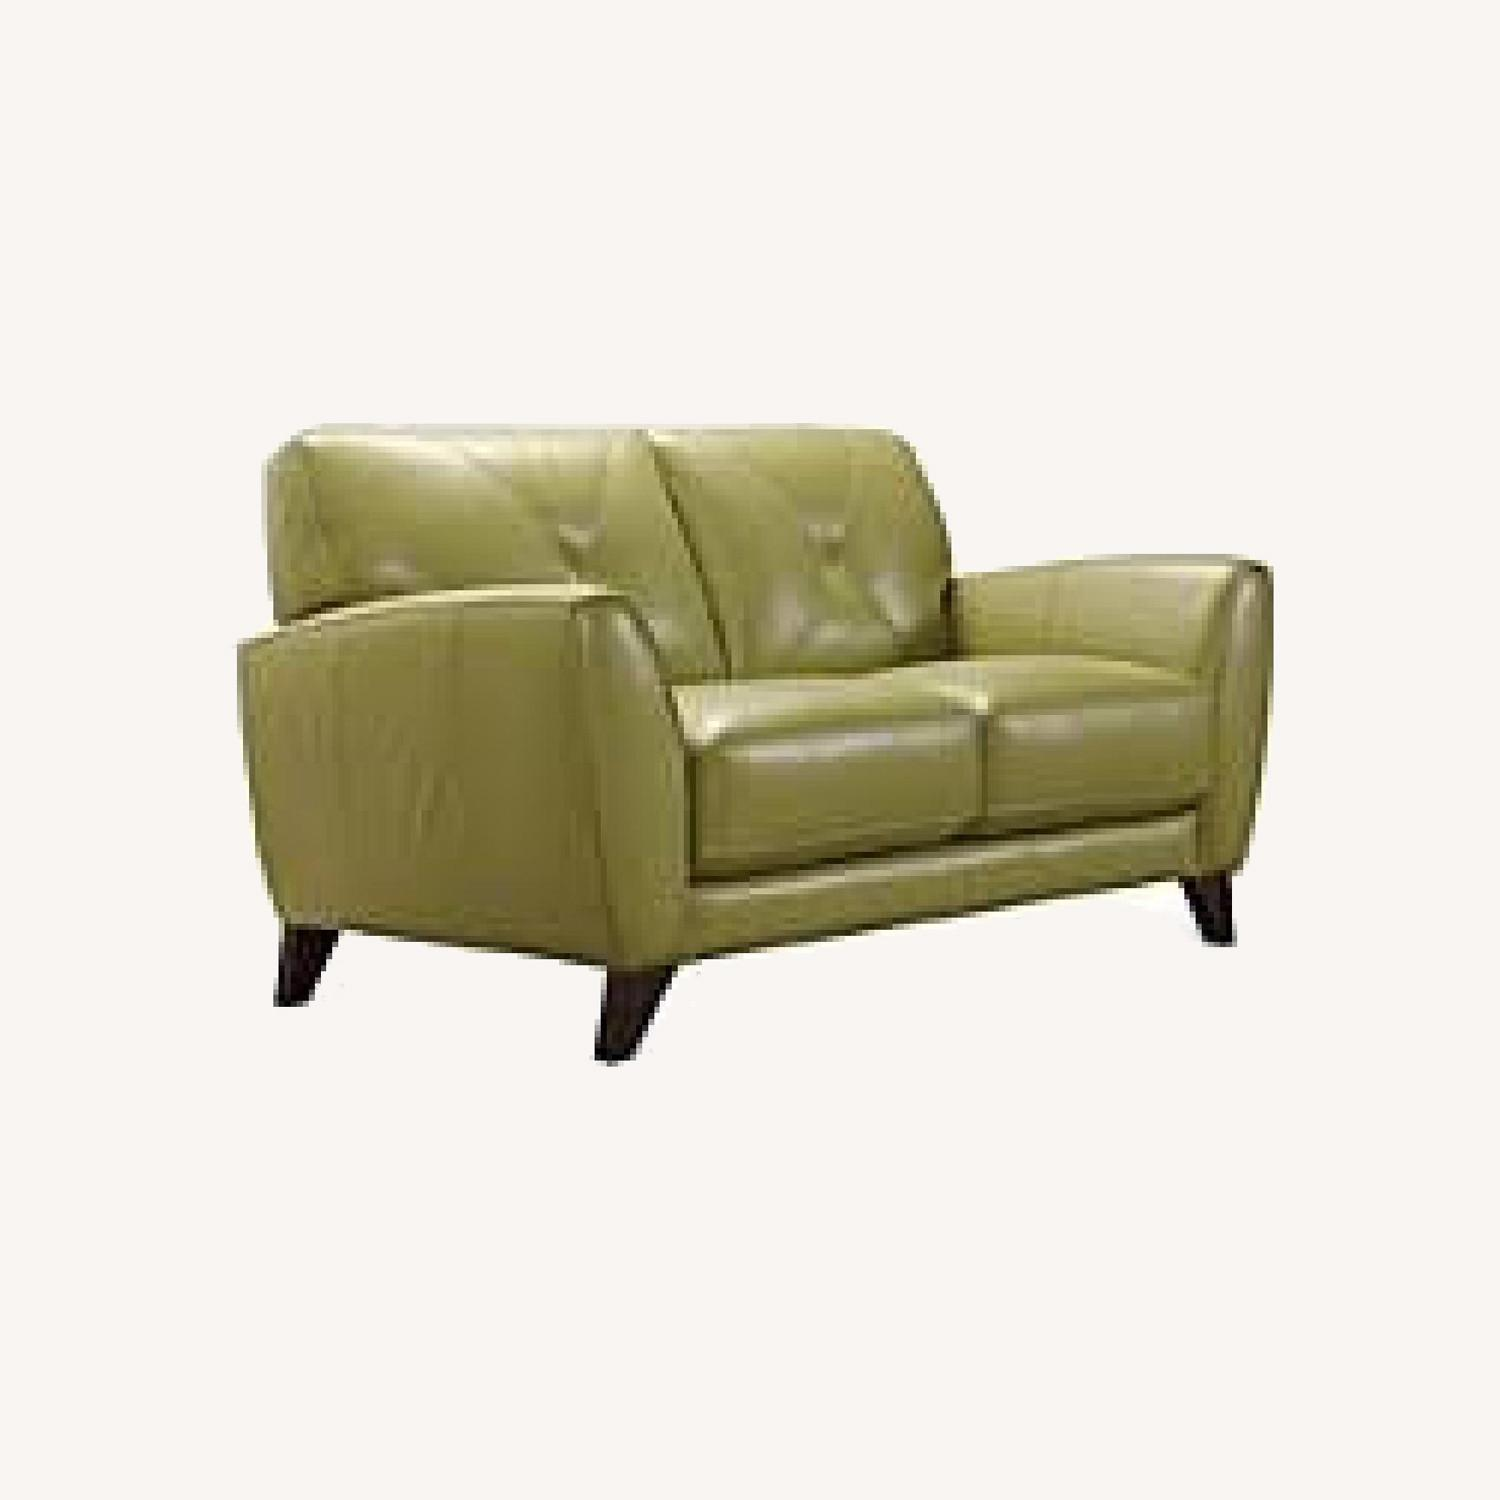 Macy's light Green Leather Couch - image-0